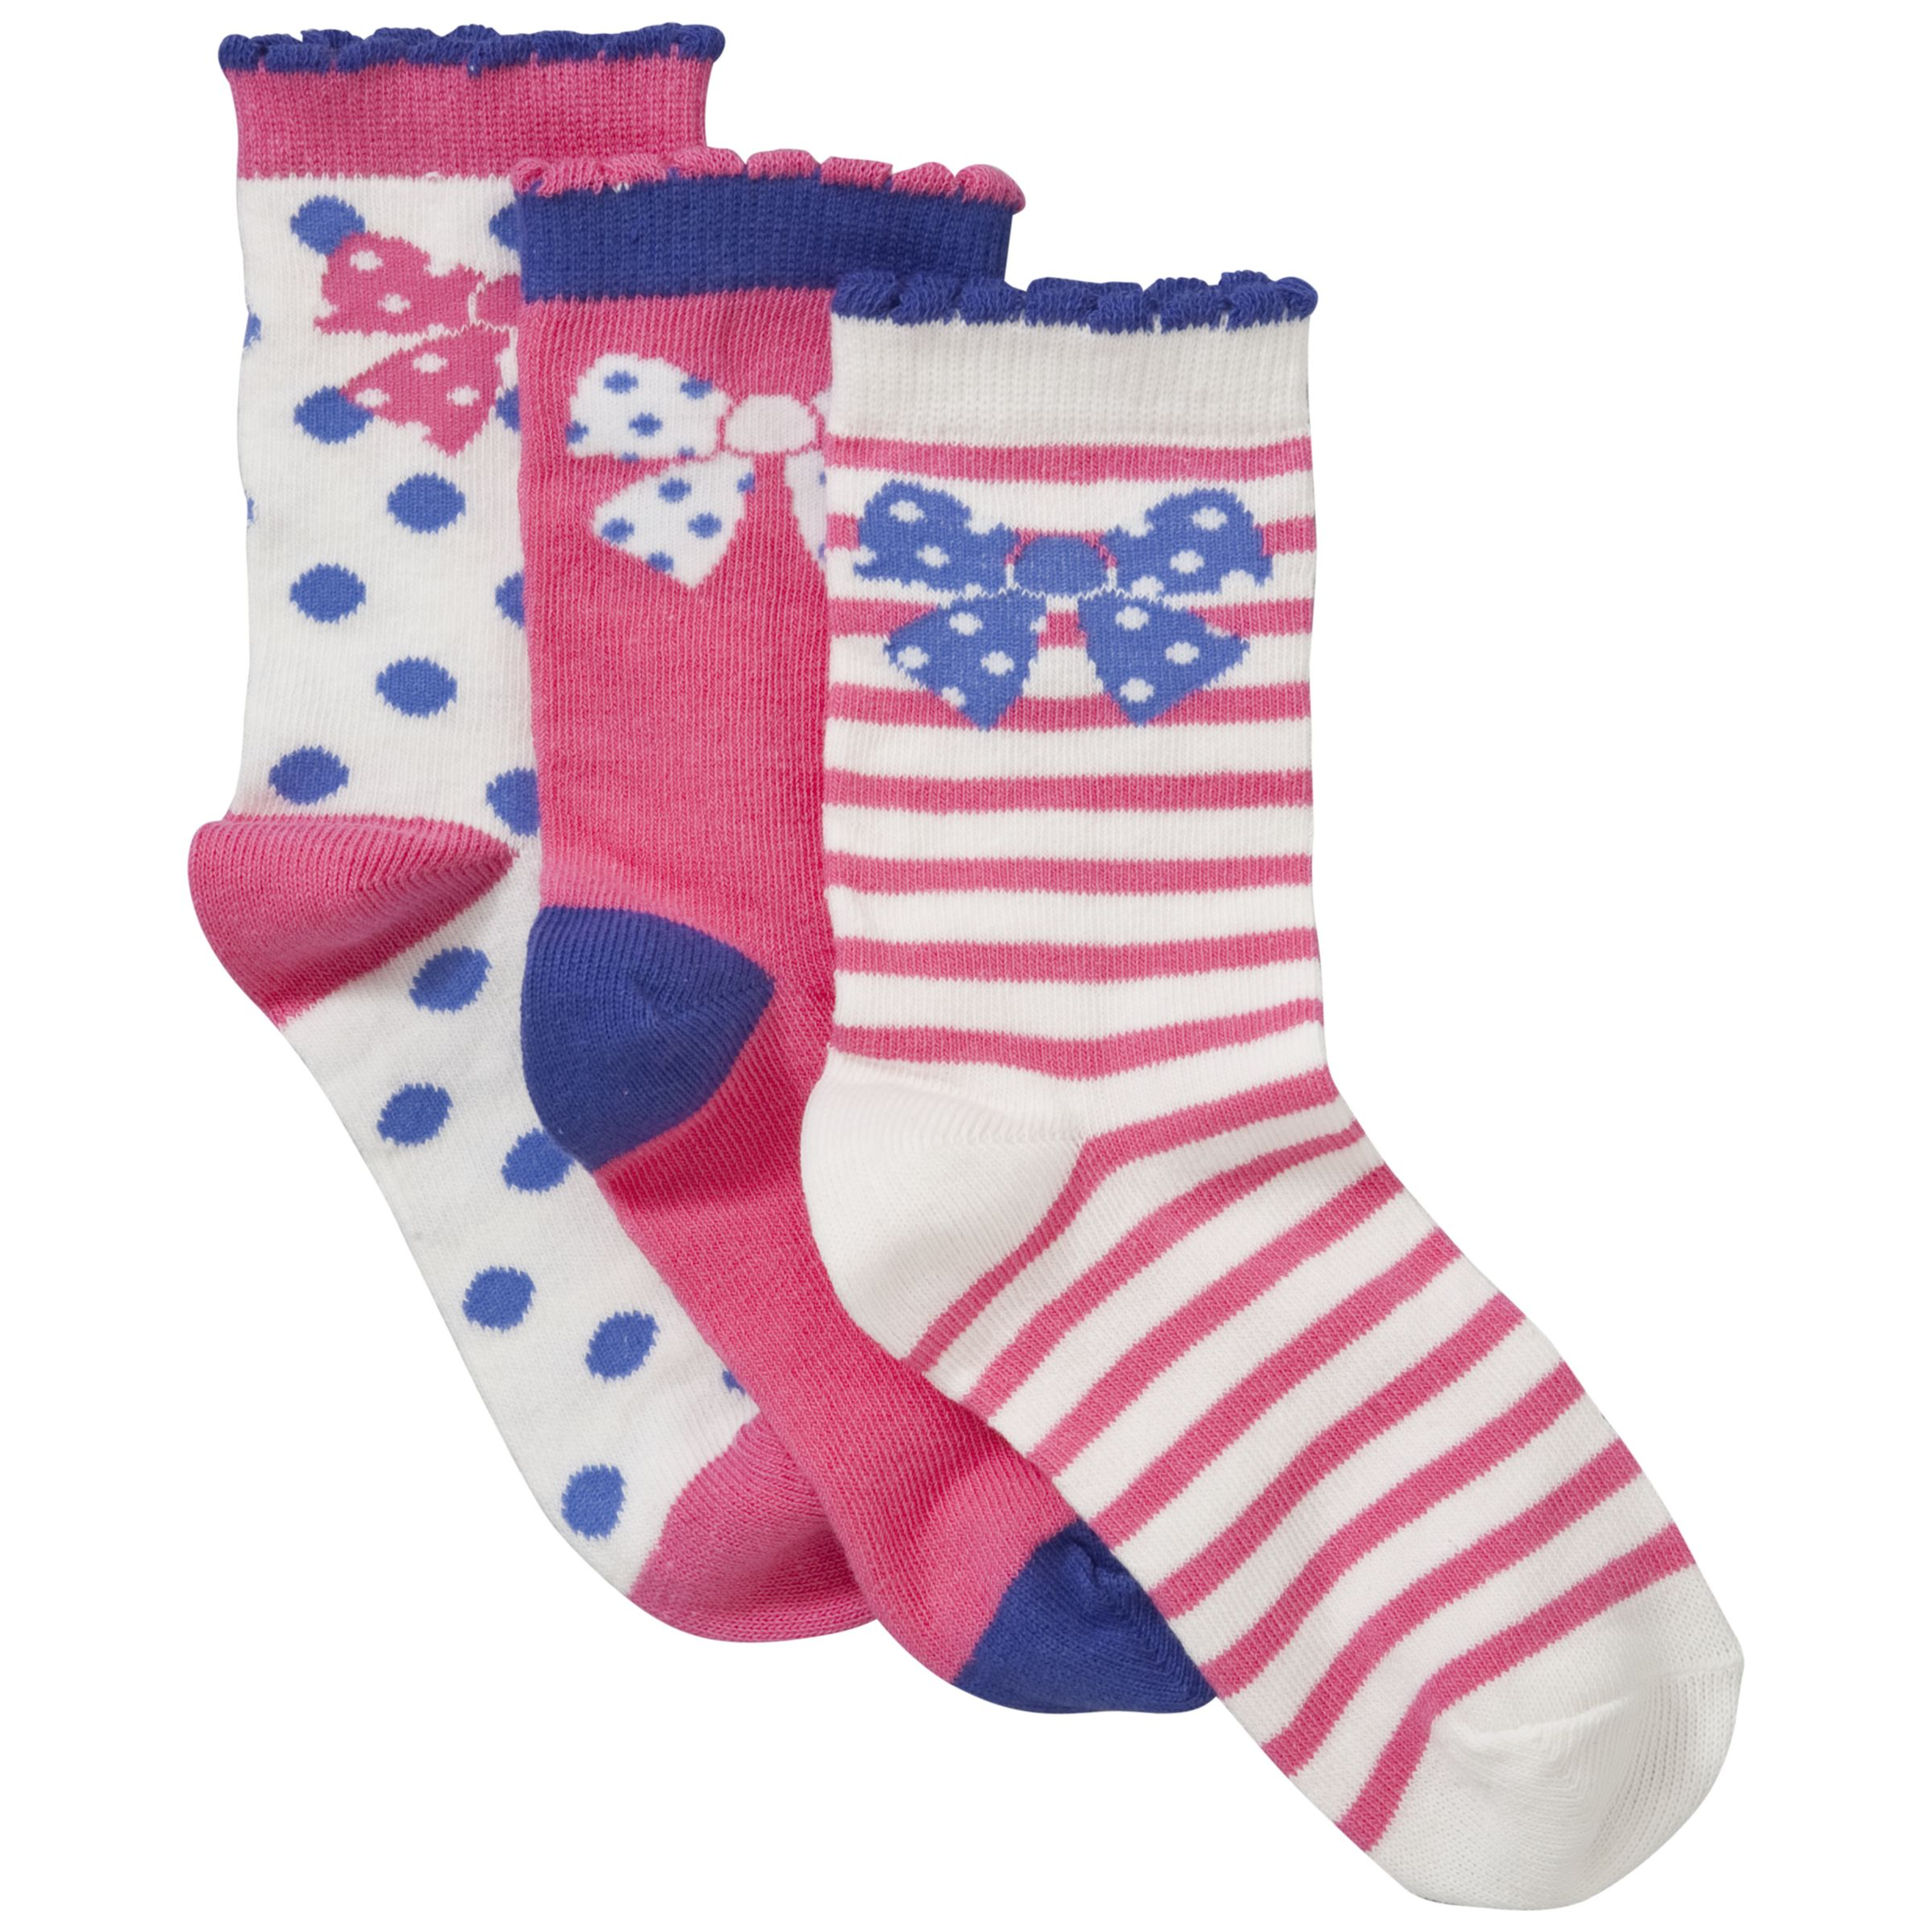 John Lewis Girl Bow Socks, Pack of 3, Pink/Blue